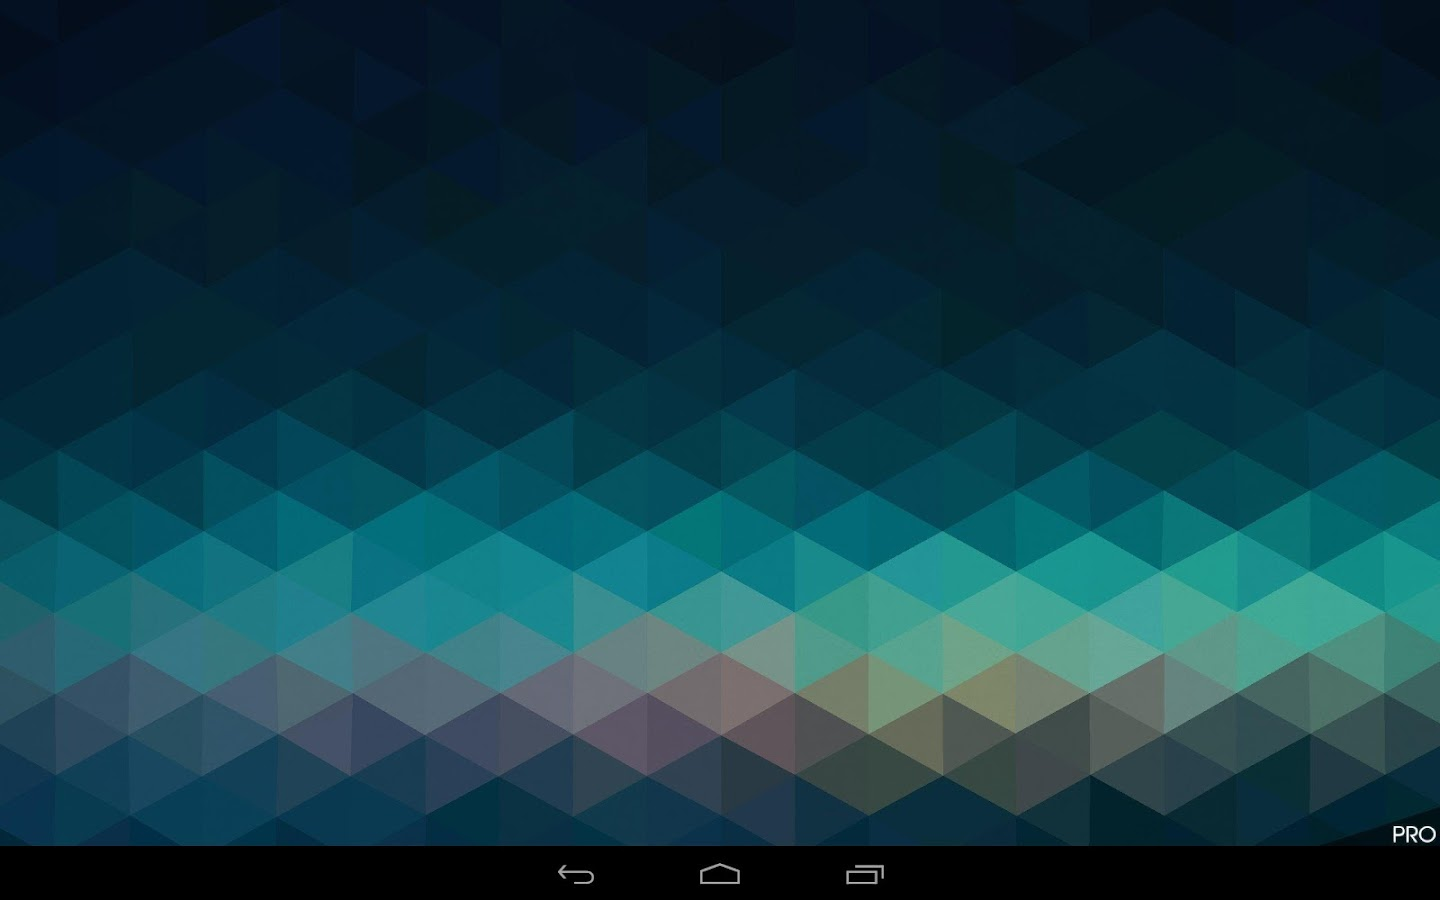 Fracta pro live wallpaper android apps on google play fracta pro live wallpaper screenshot voltagebd Image collections